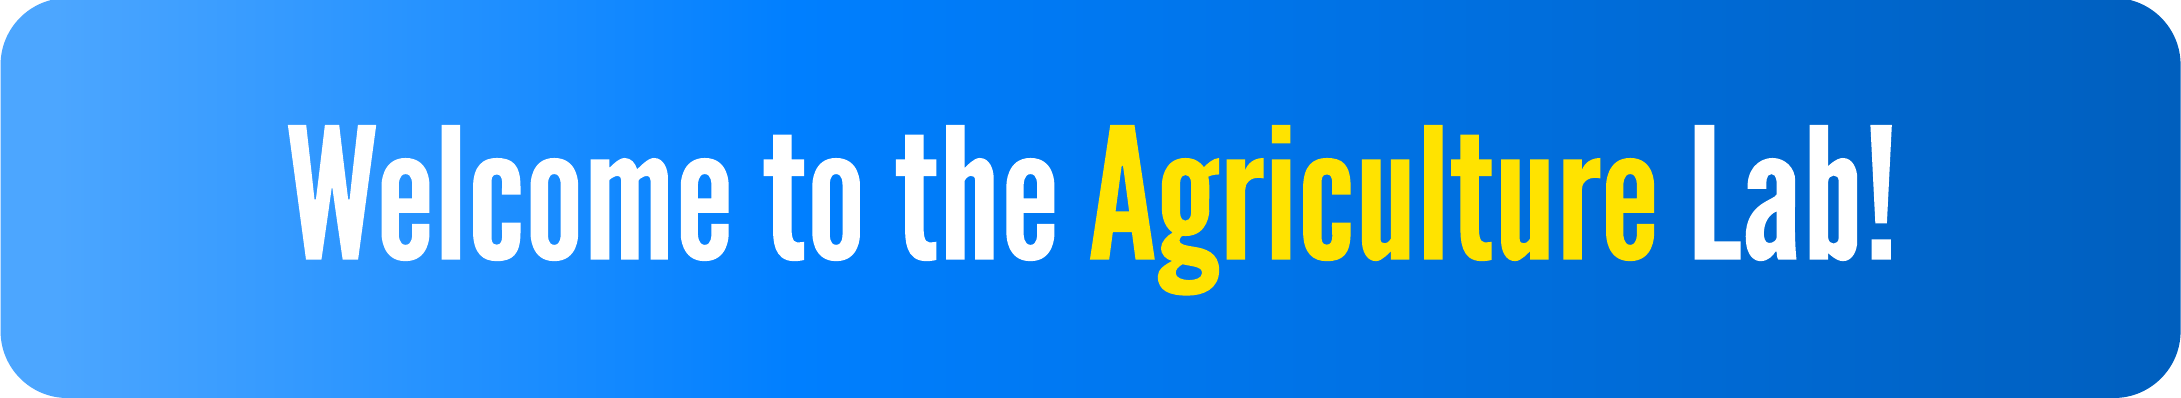 Welcome to the Agriculture Lab!